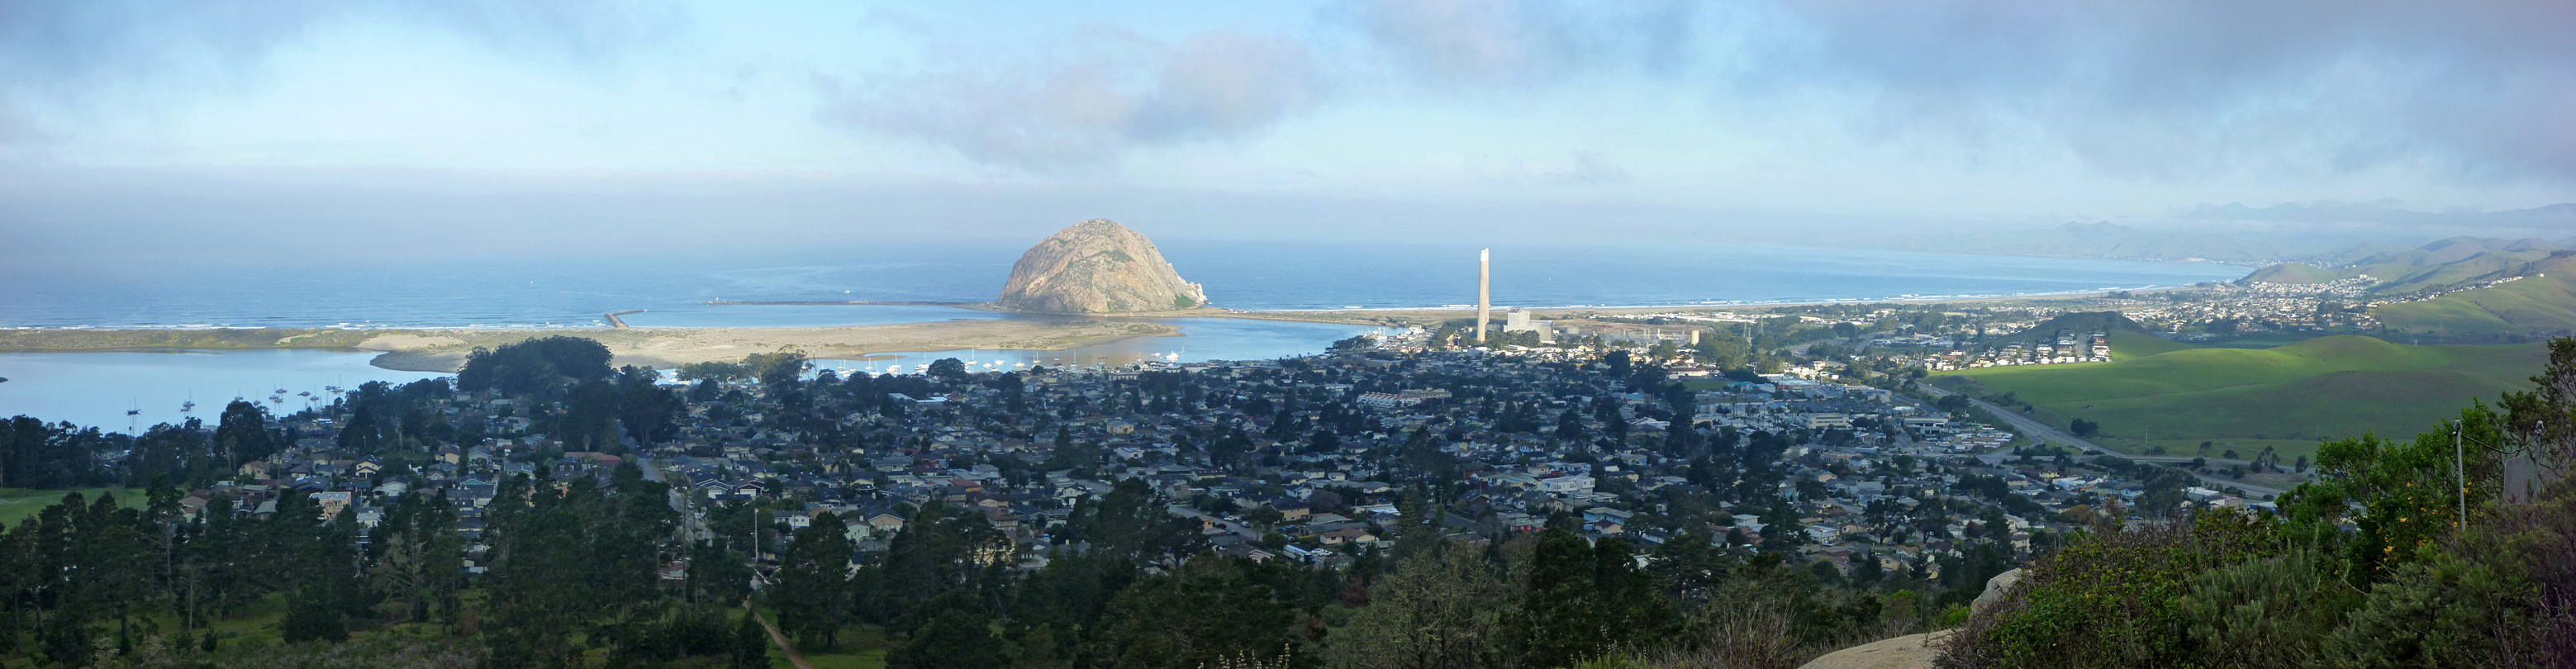 The town of Morro Bay